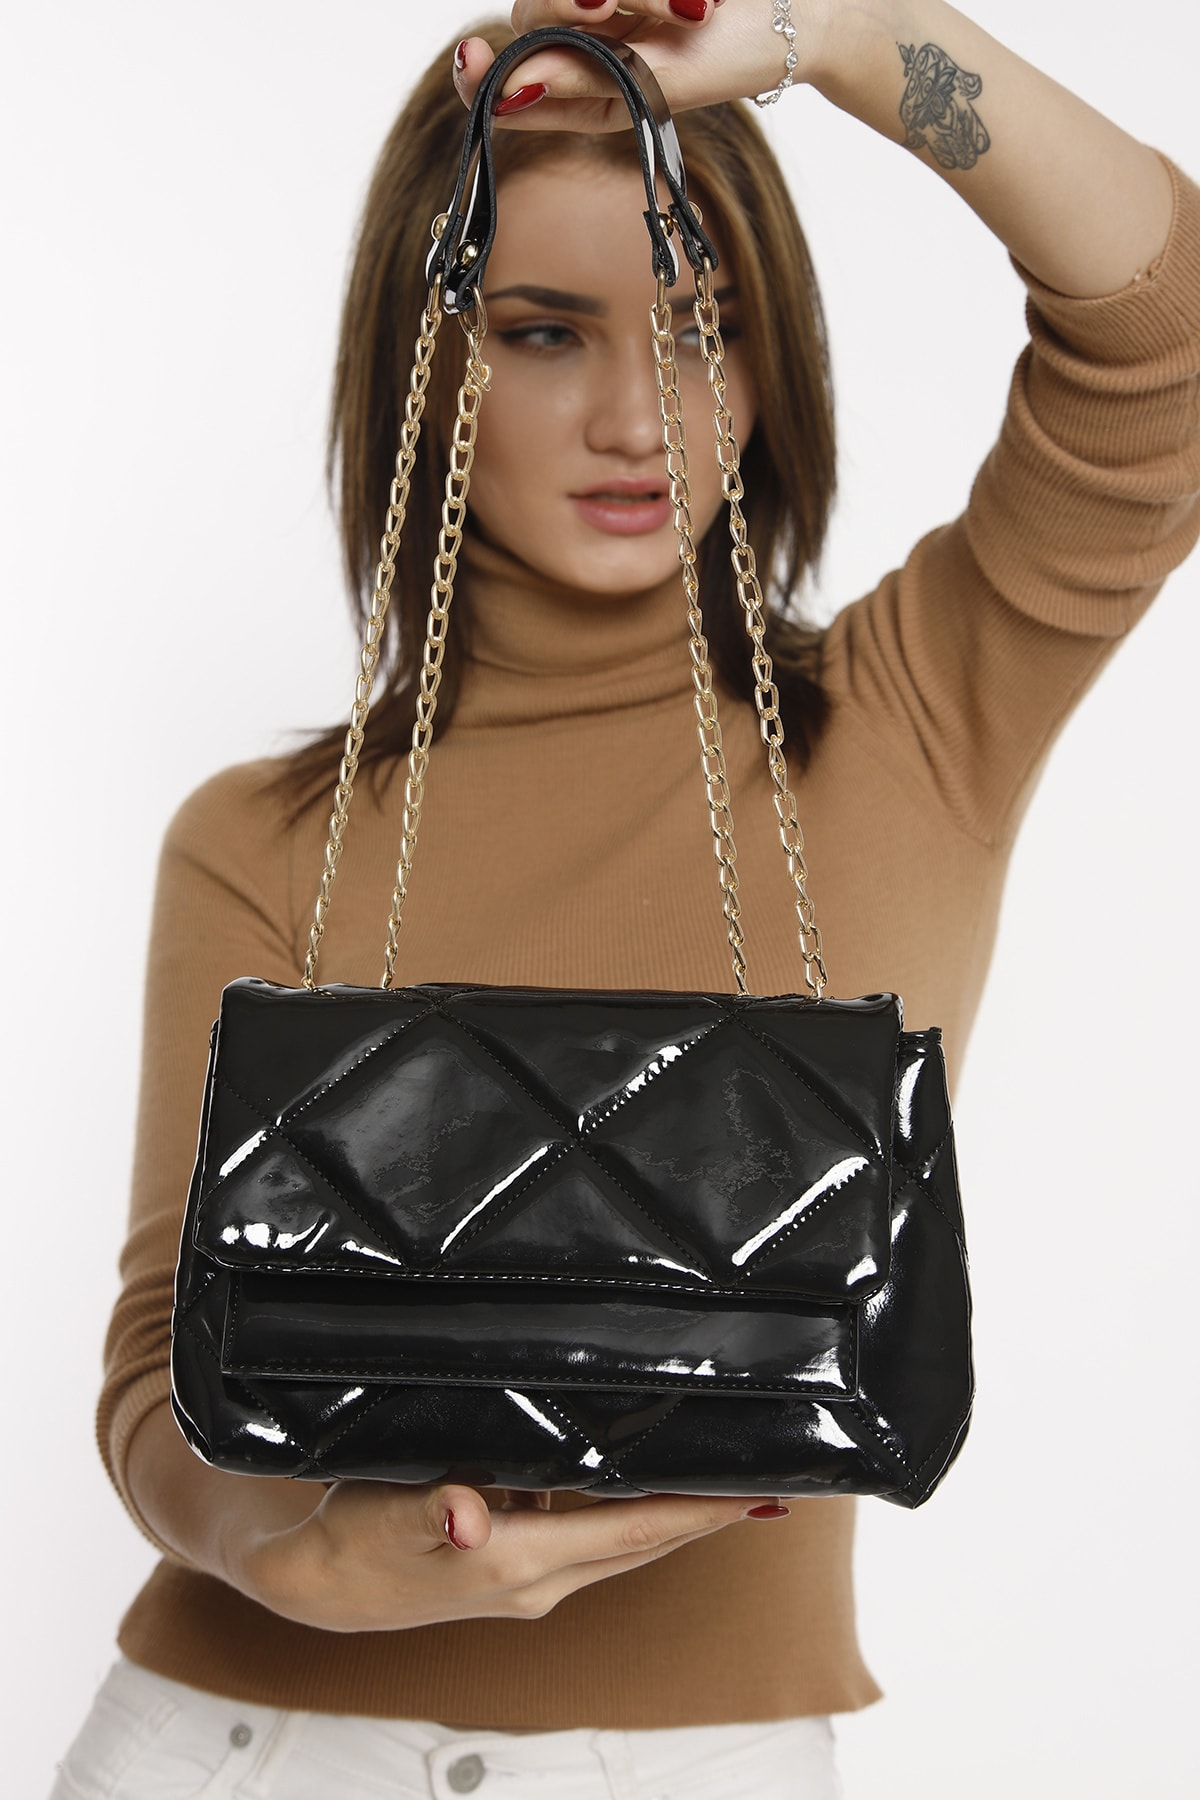 Patent Leather Chain Detailed Women's Shoulde Fashion Trend Shoulder Strap Waterproof Velvet Leather Casual Women's Shoulder Bag